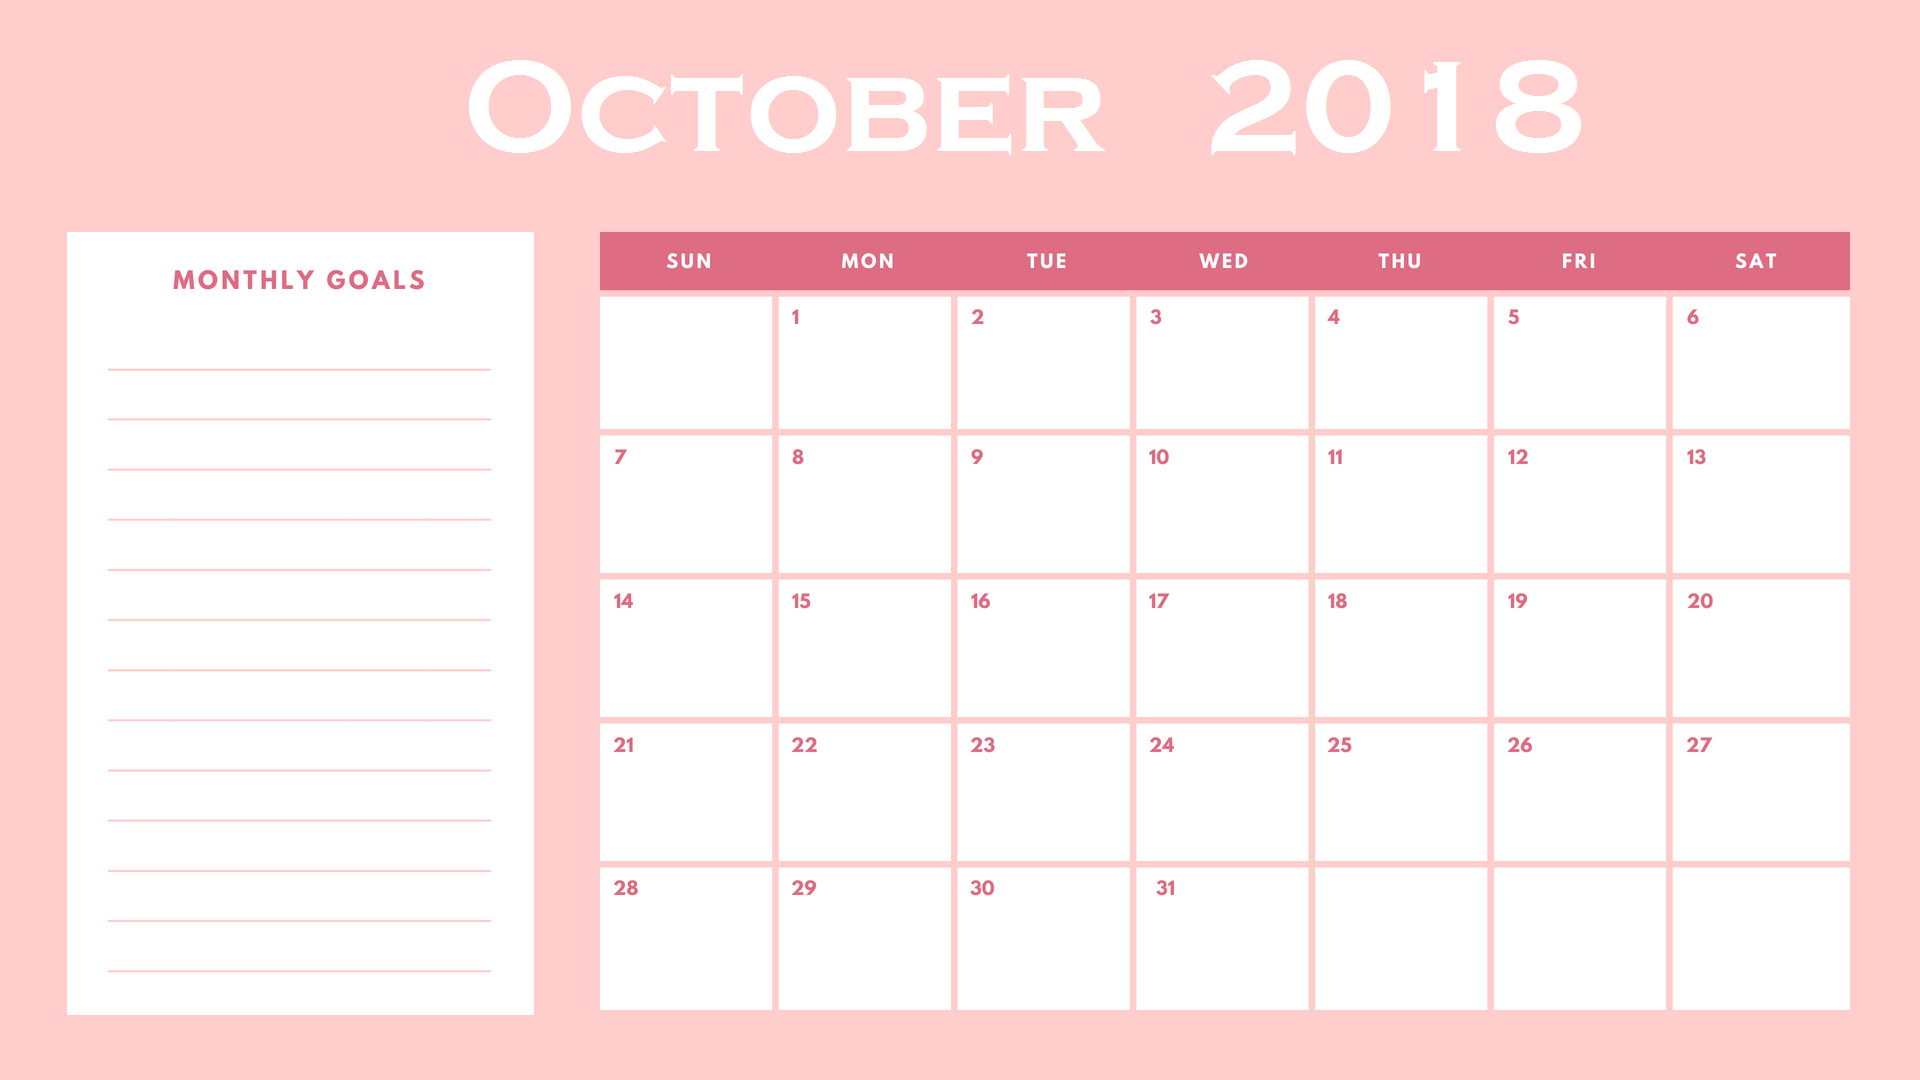 Calendar Wallpaper Maker : Cute october calendar wall floral pink designs images